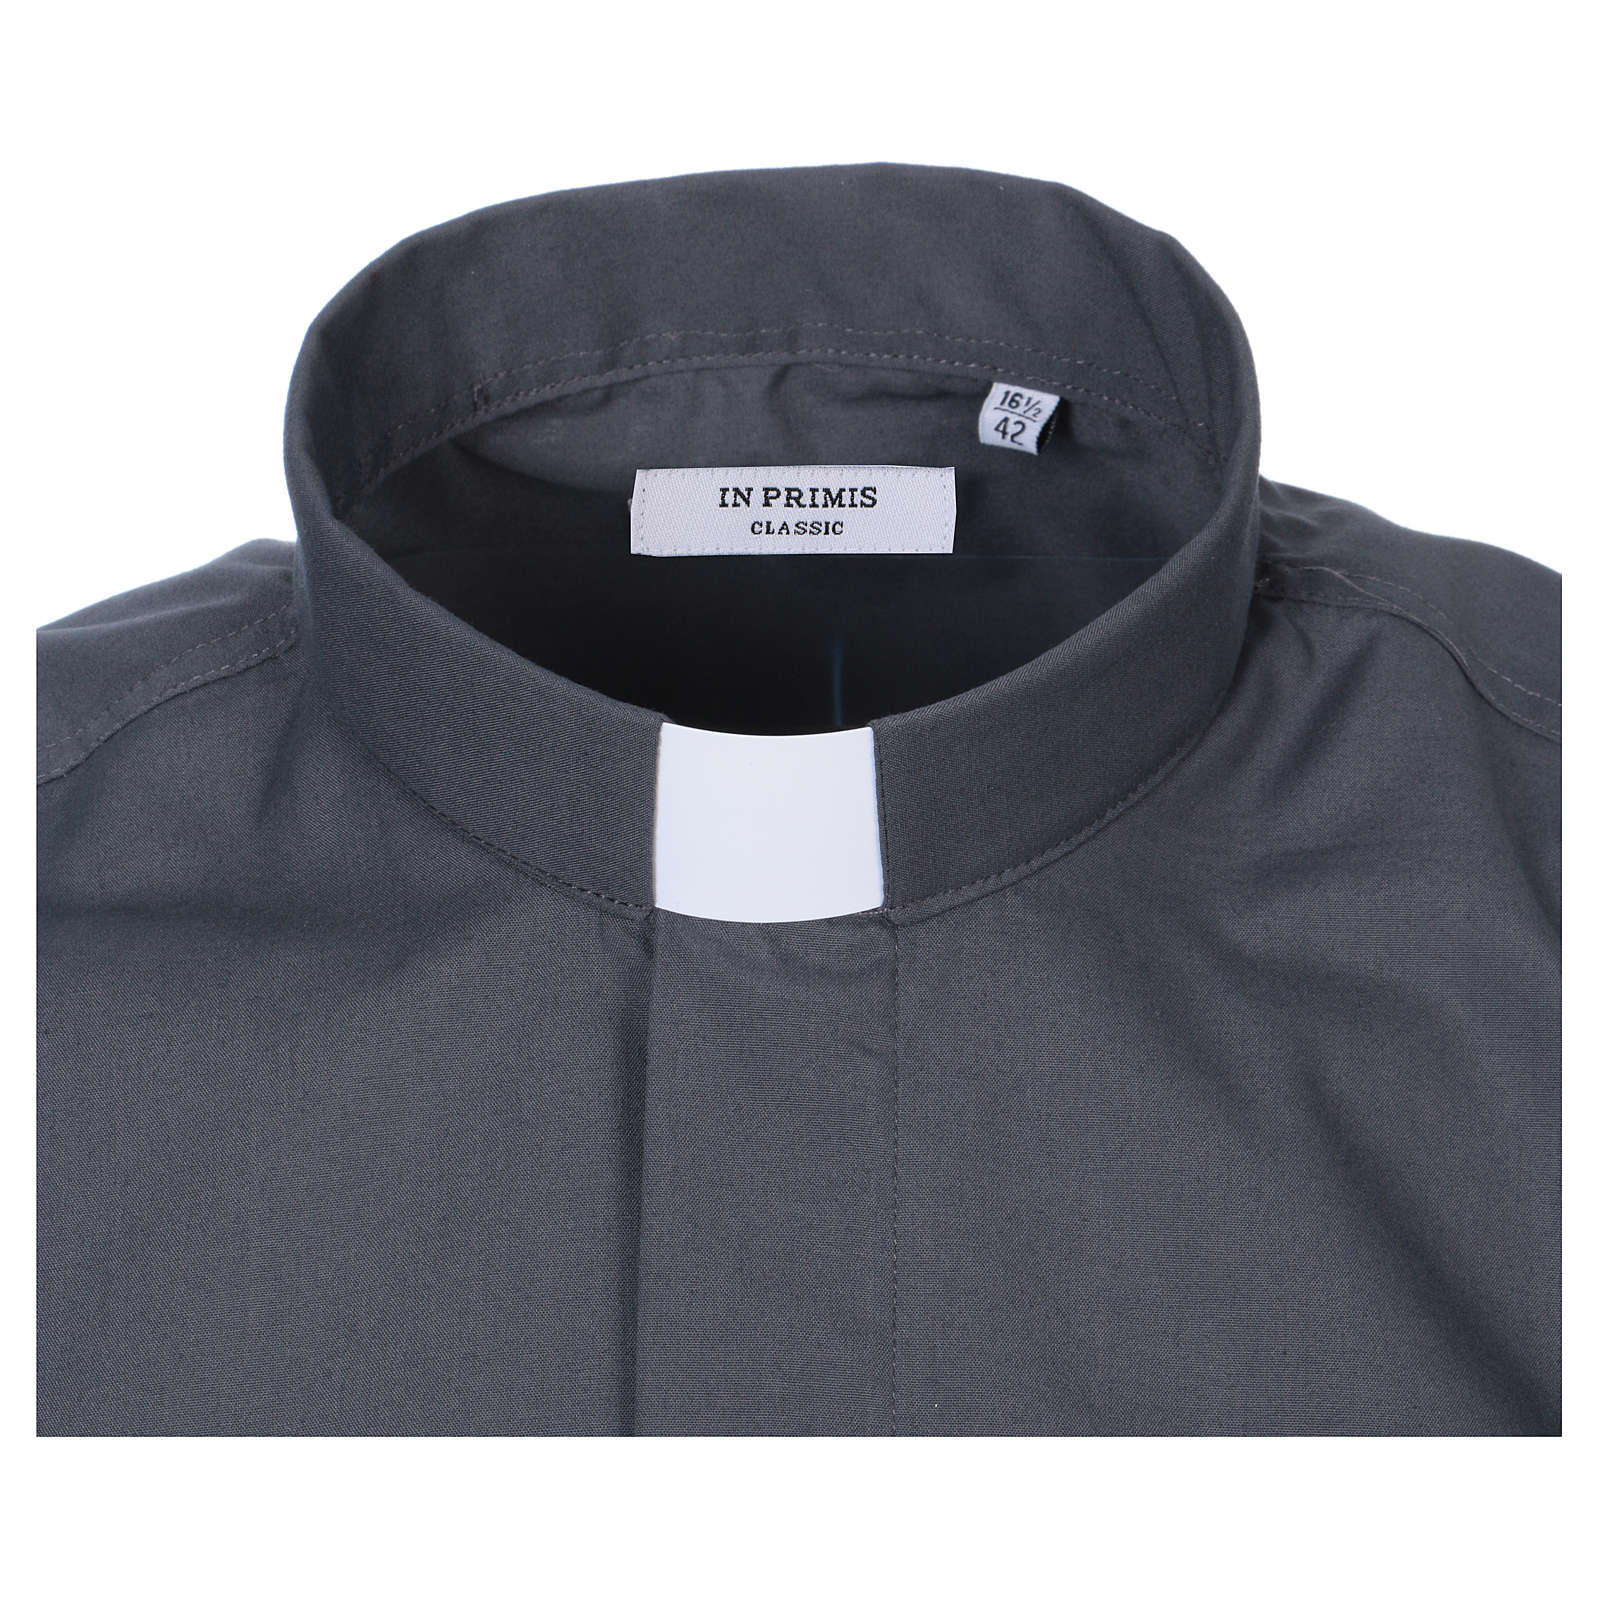 Camicia Collo Clergy manica corta misto grigio scuro In Primis 4